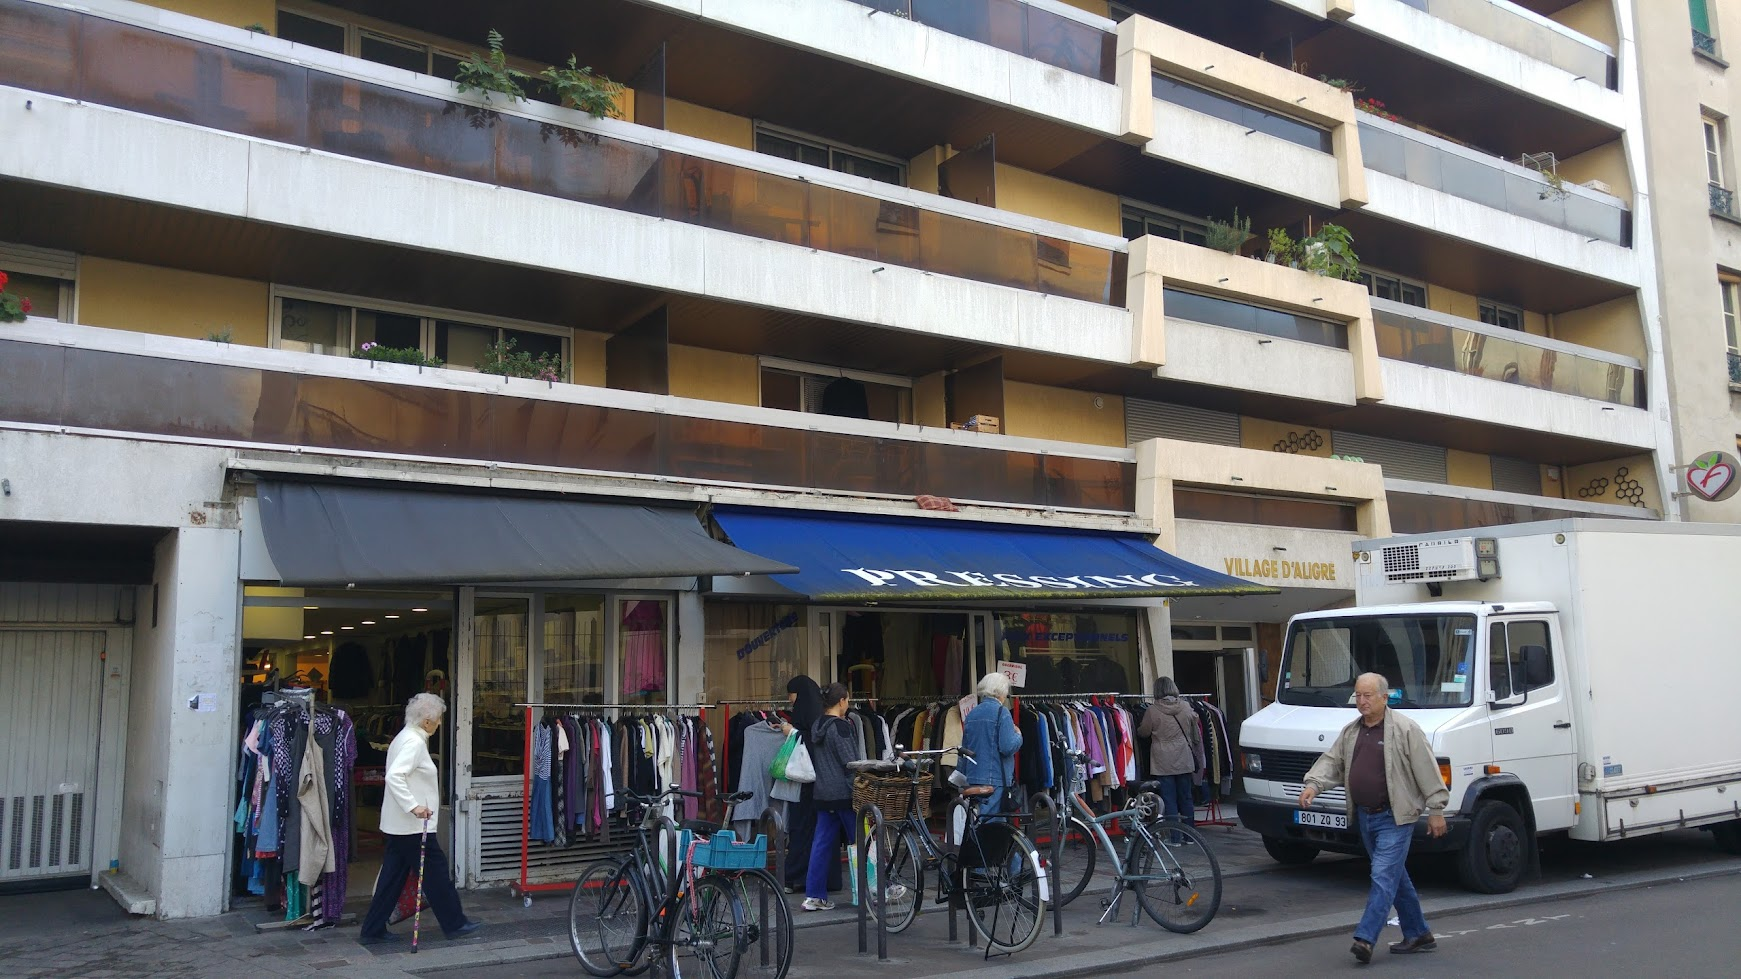 Thrift Stores Around the World – Paris, Rue D'Aligre